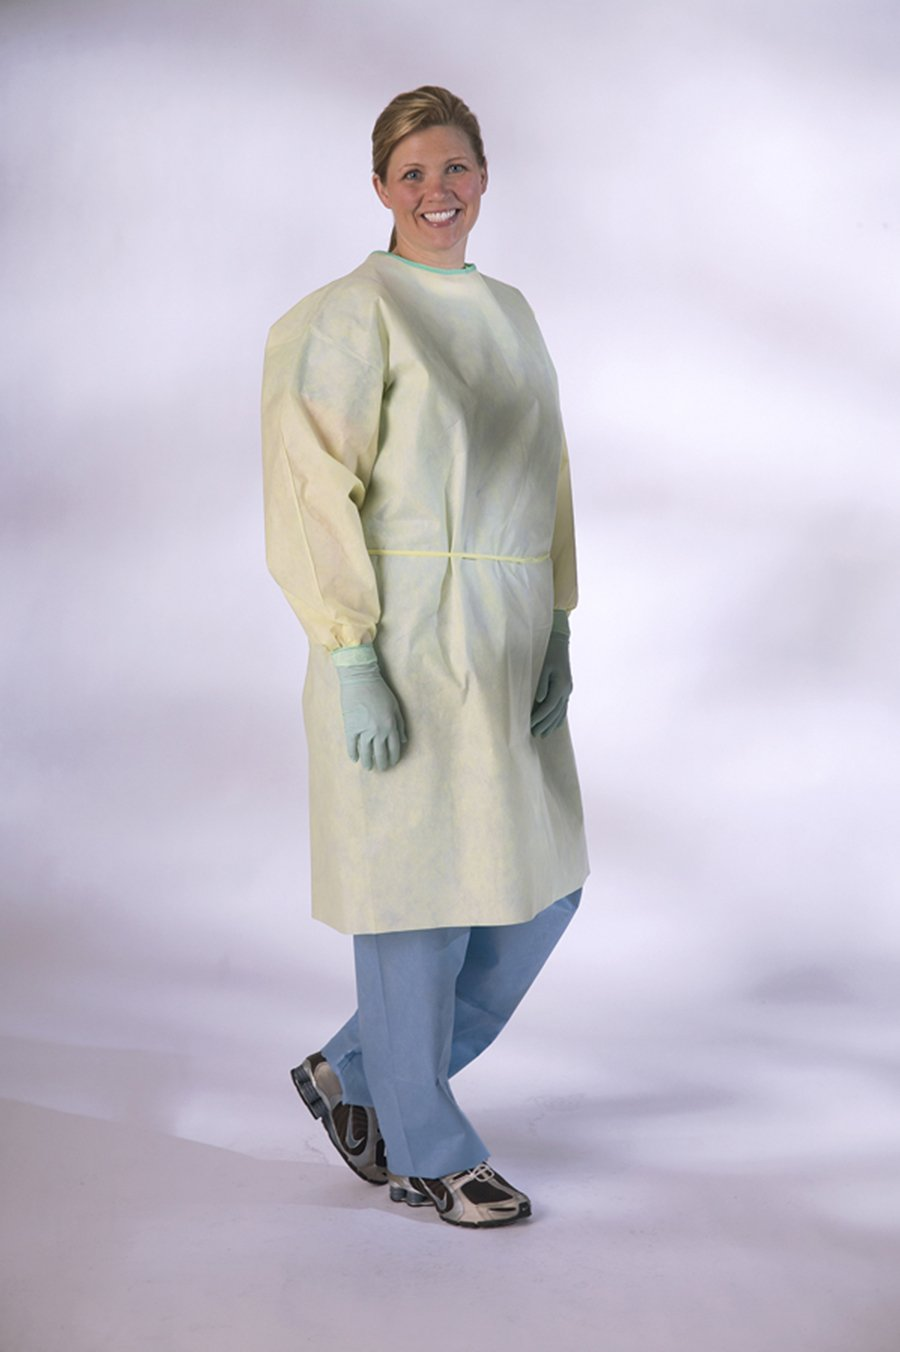 Medline NONLV200 AAMI Level 2 Isolation Gowns, Latex Free, Regular/Large, Yellow (Pack of 100)